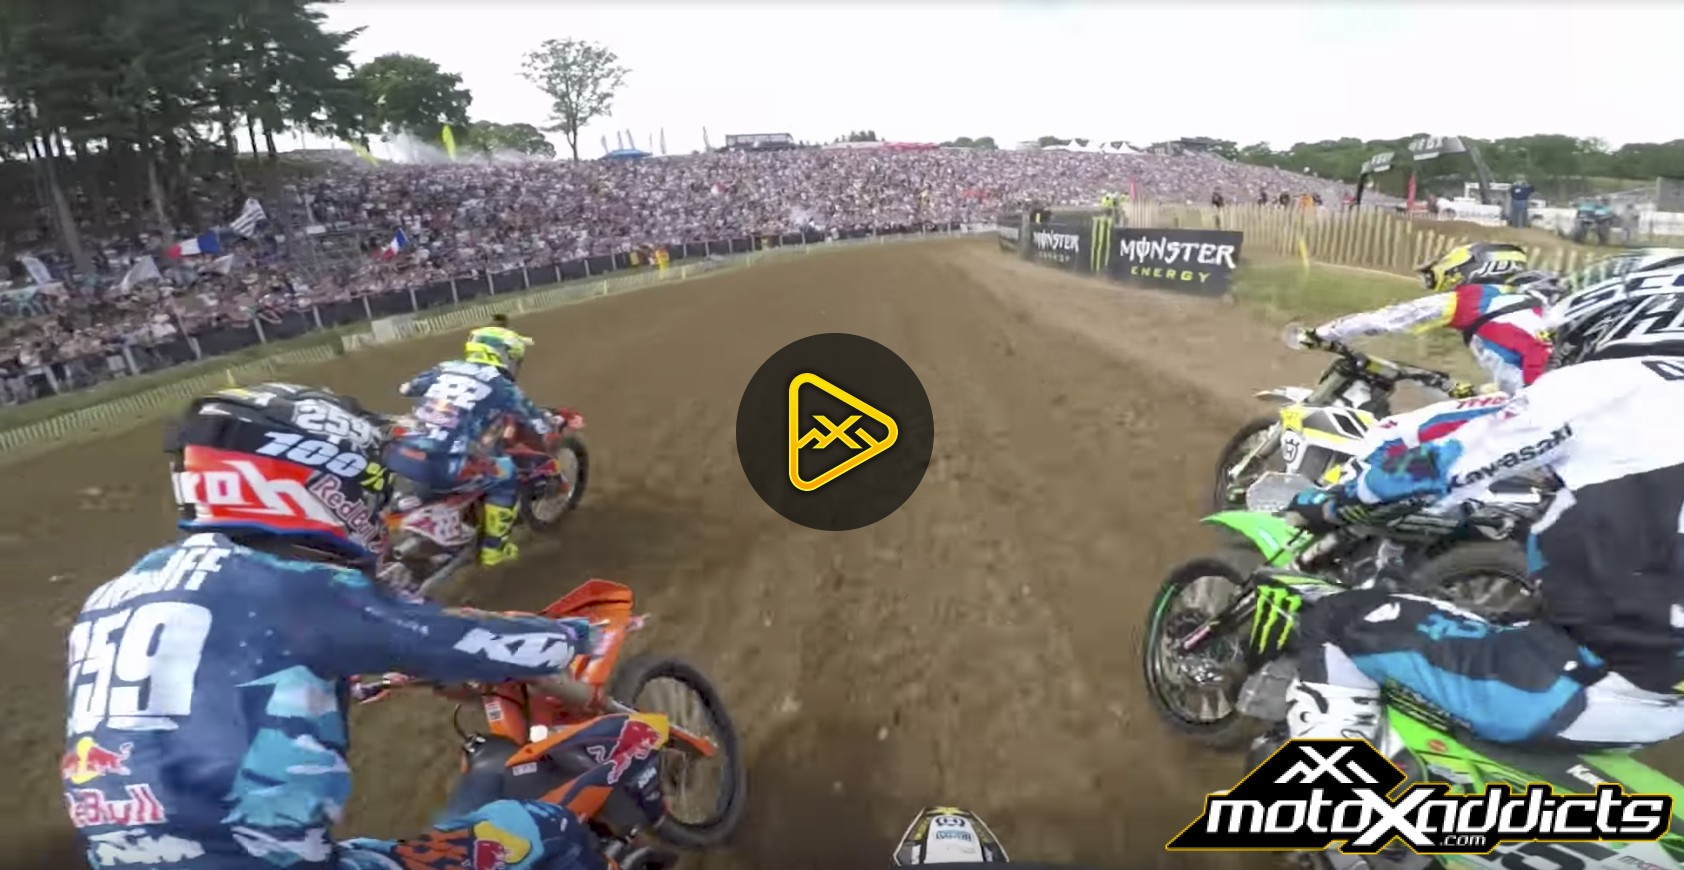 GoPro: Gautier Paulin at 2017 MXGP of France